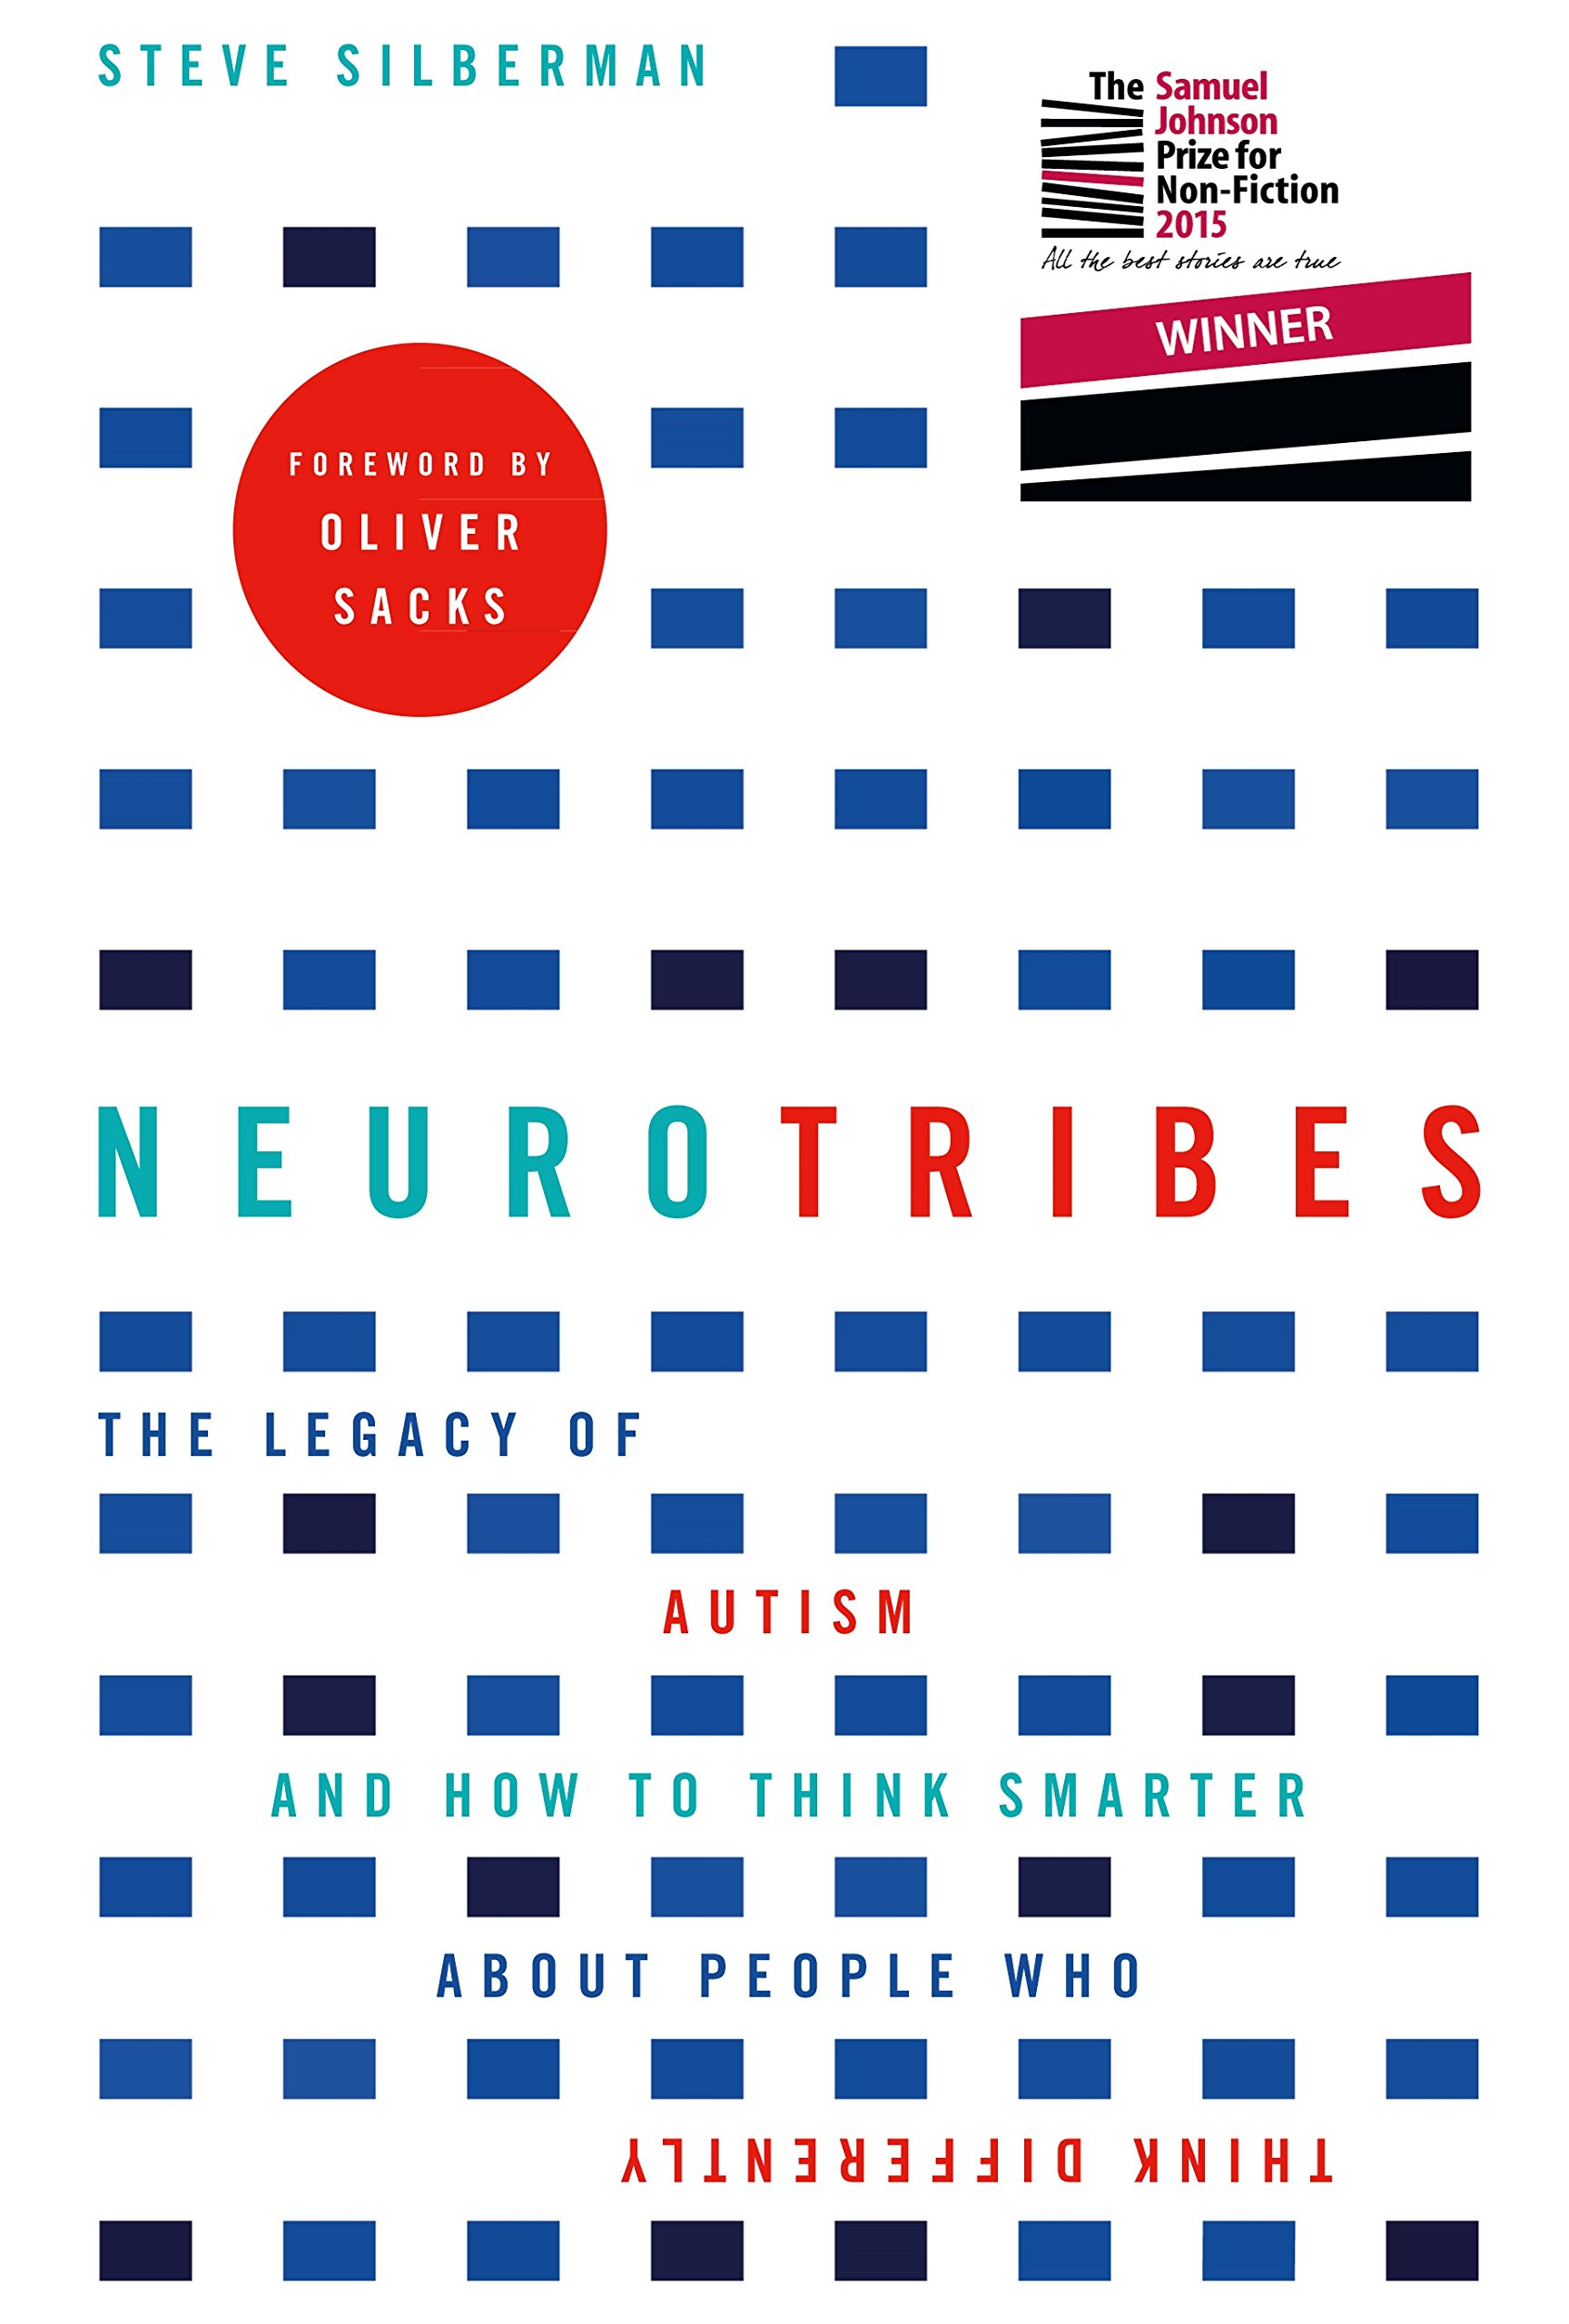 NeuroTribes: The Legacy of Autism and How to Think Smarter About People Who Think Differently: Amazon.co.uk: Steve Silberman: Books